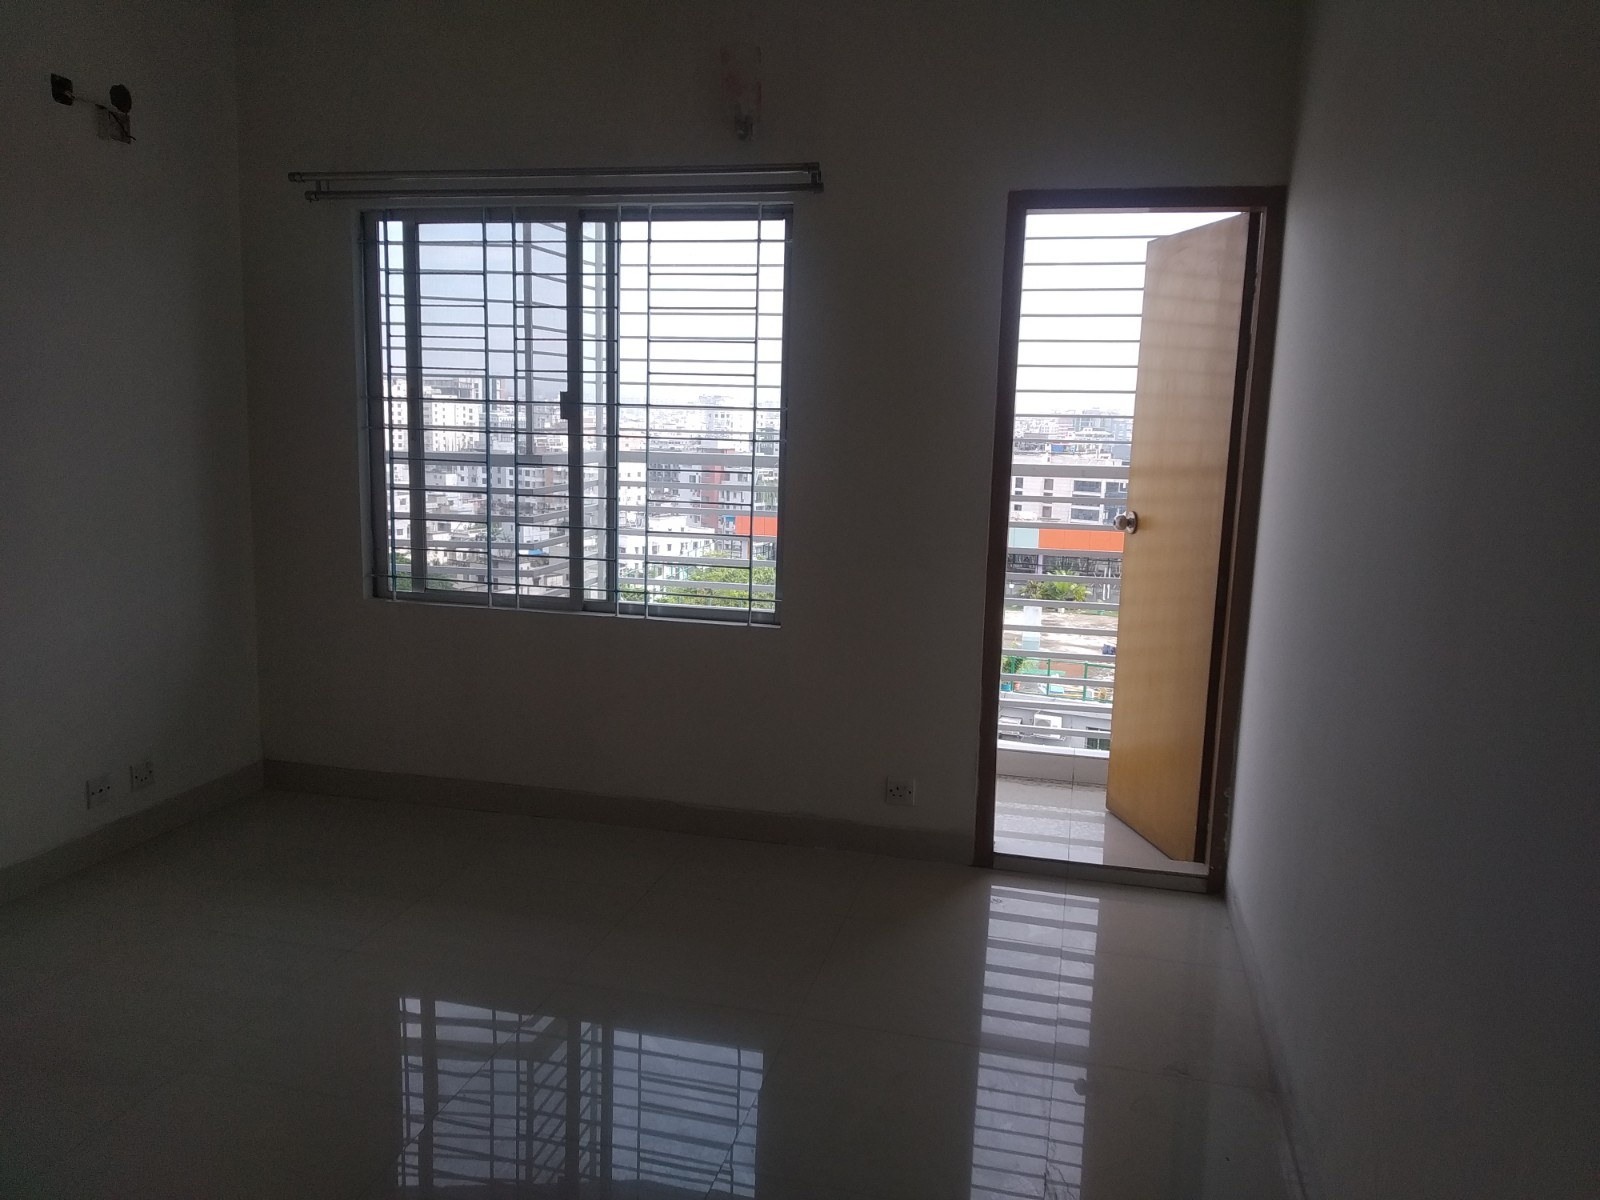 2810-sft-apartment-for-sale-at-dhanmondi-14th-floor-743667